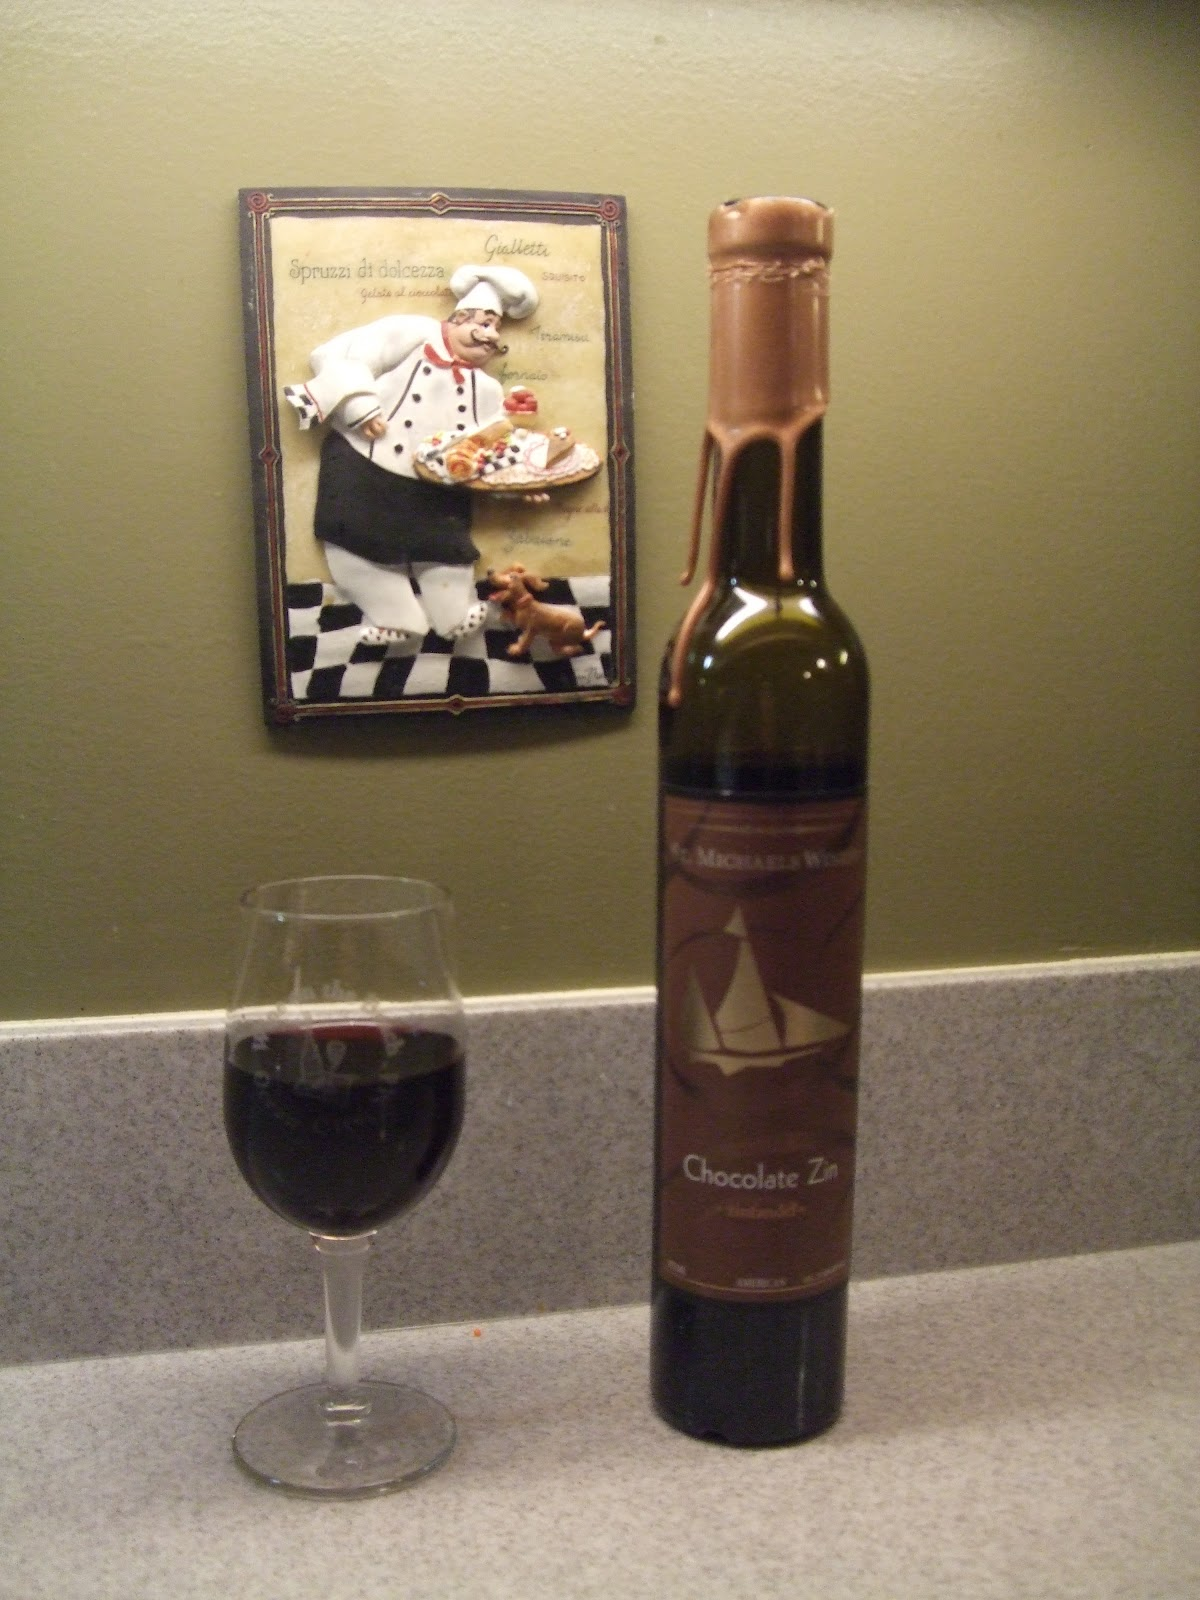 Tales Of Two Cities: Chocolate Wine